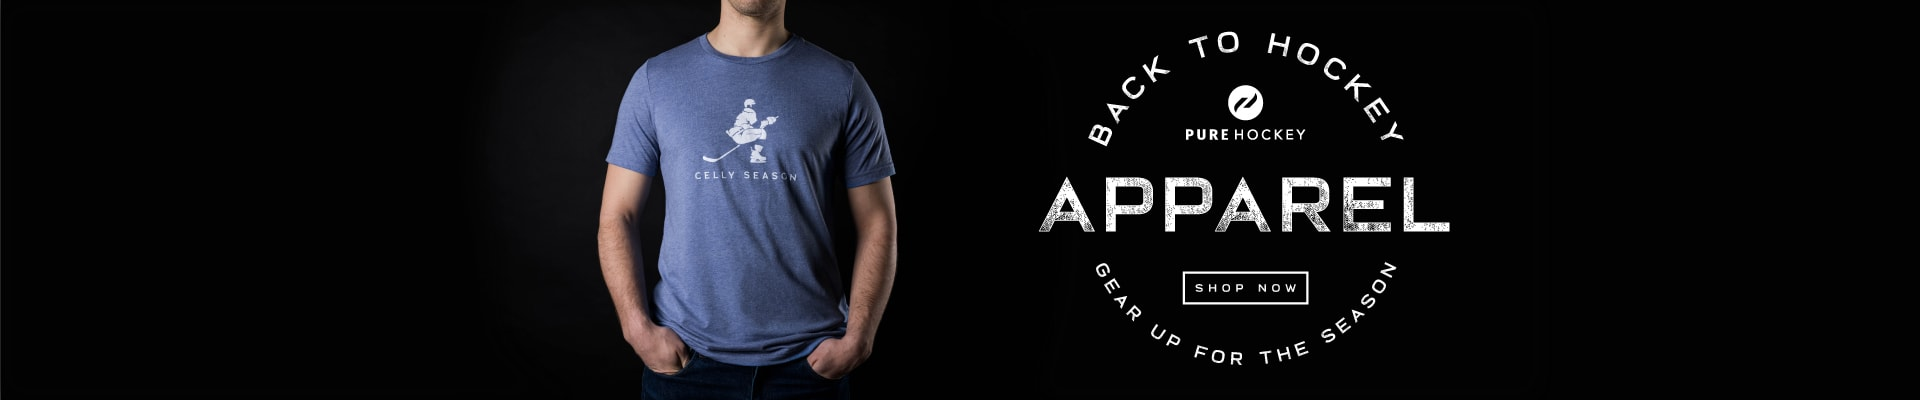 Back To Hockey - Apparel